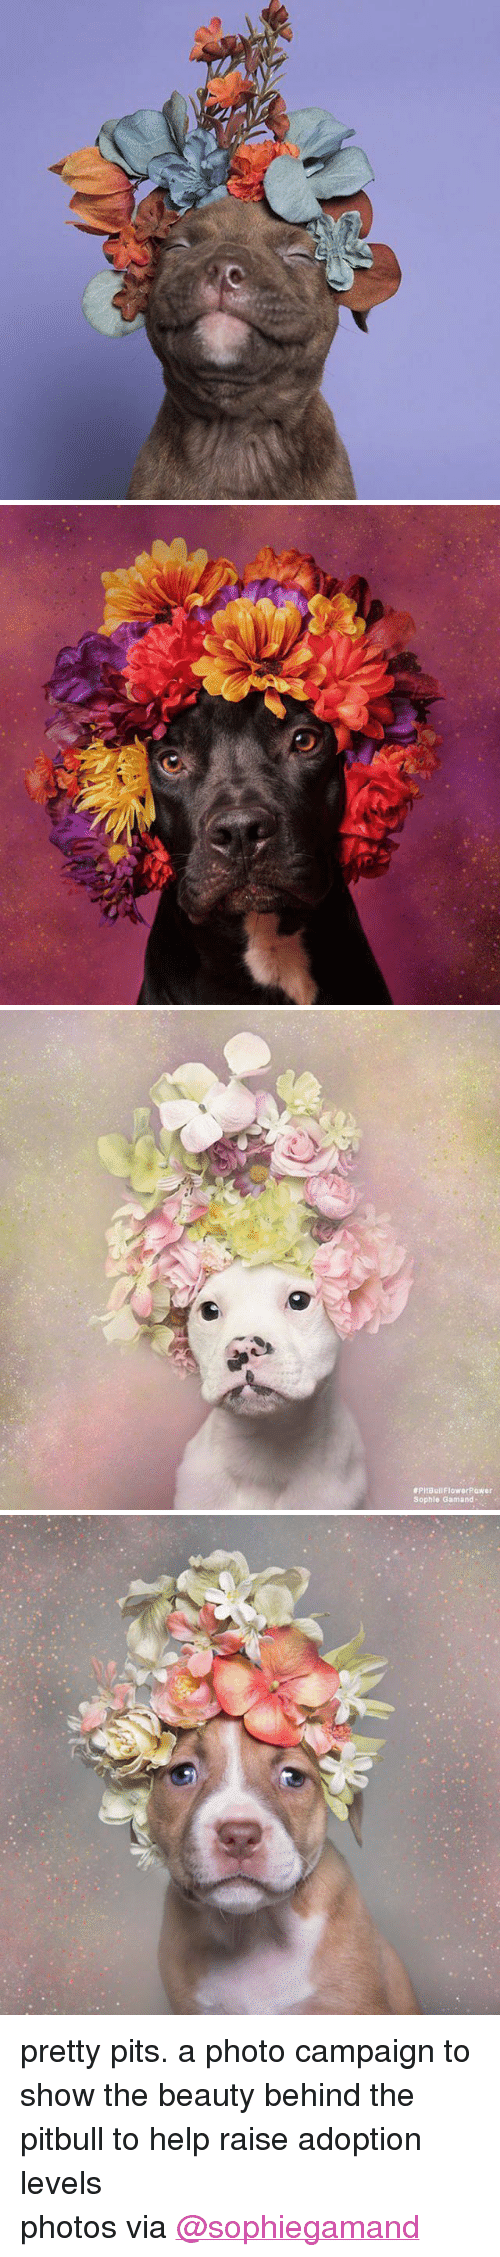 """Pits:  #PitBullFlowerRawer  Sophle Gamand <p>pretty pits. a photo campaign to show the beauty behind the pitbull to help raise adoption levels<br/></p><p>photos via <a href=""""http://www.sophiegamand.com/flowerpower/"""" target=""""_blank"""">@sophiegamand</a></p>"""